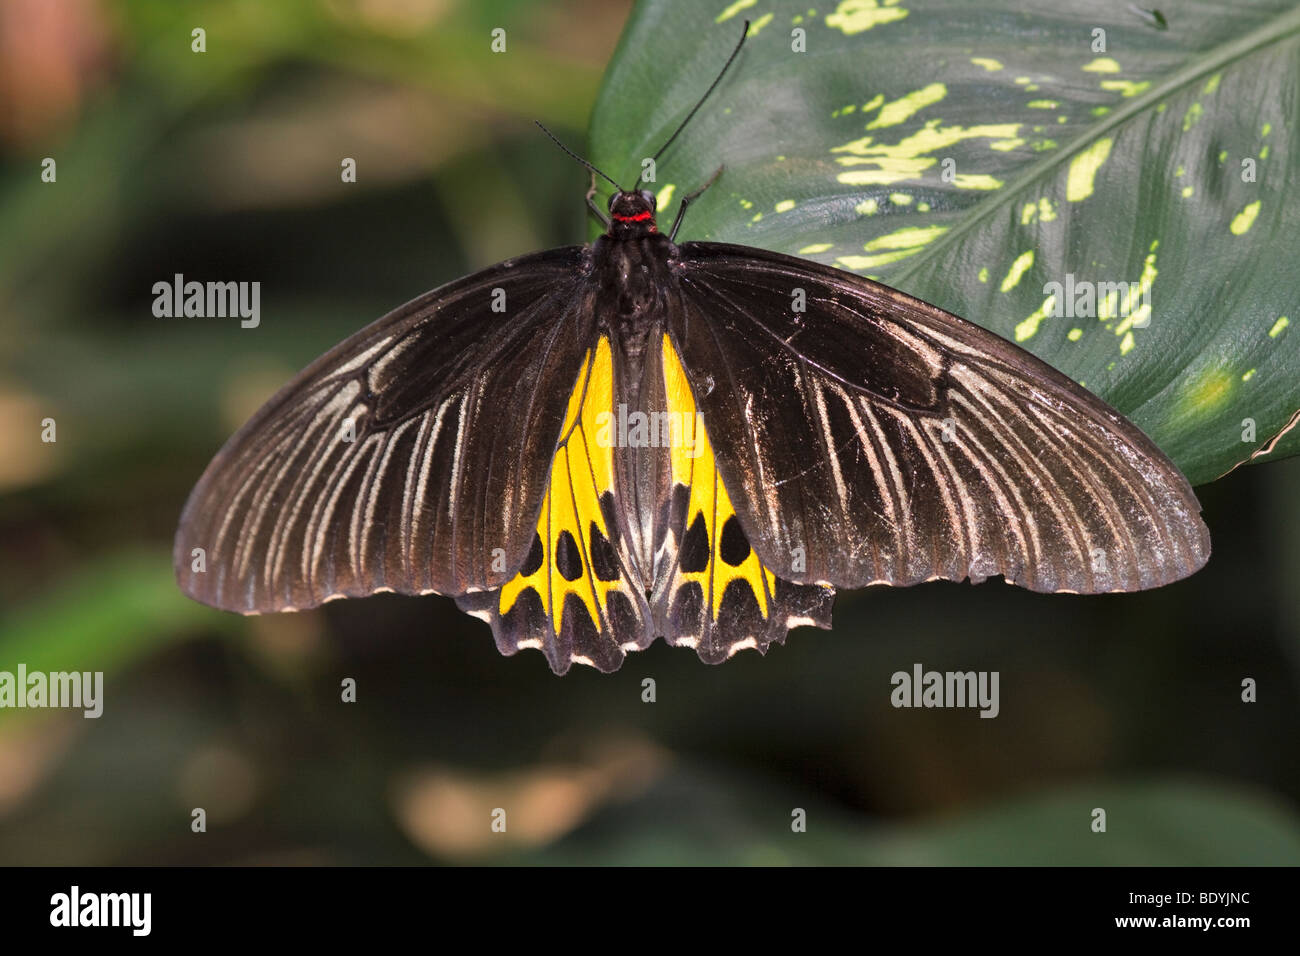 Common birdwing butterfly, Troides helena cerberus - Stock Image